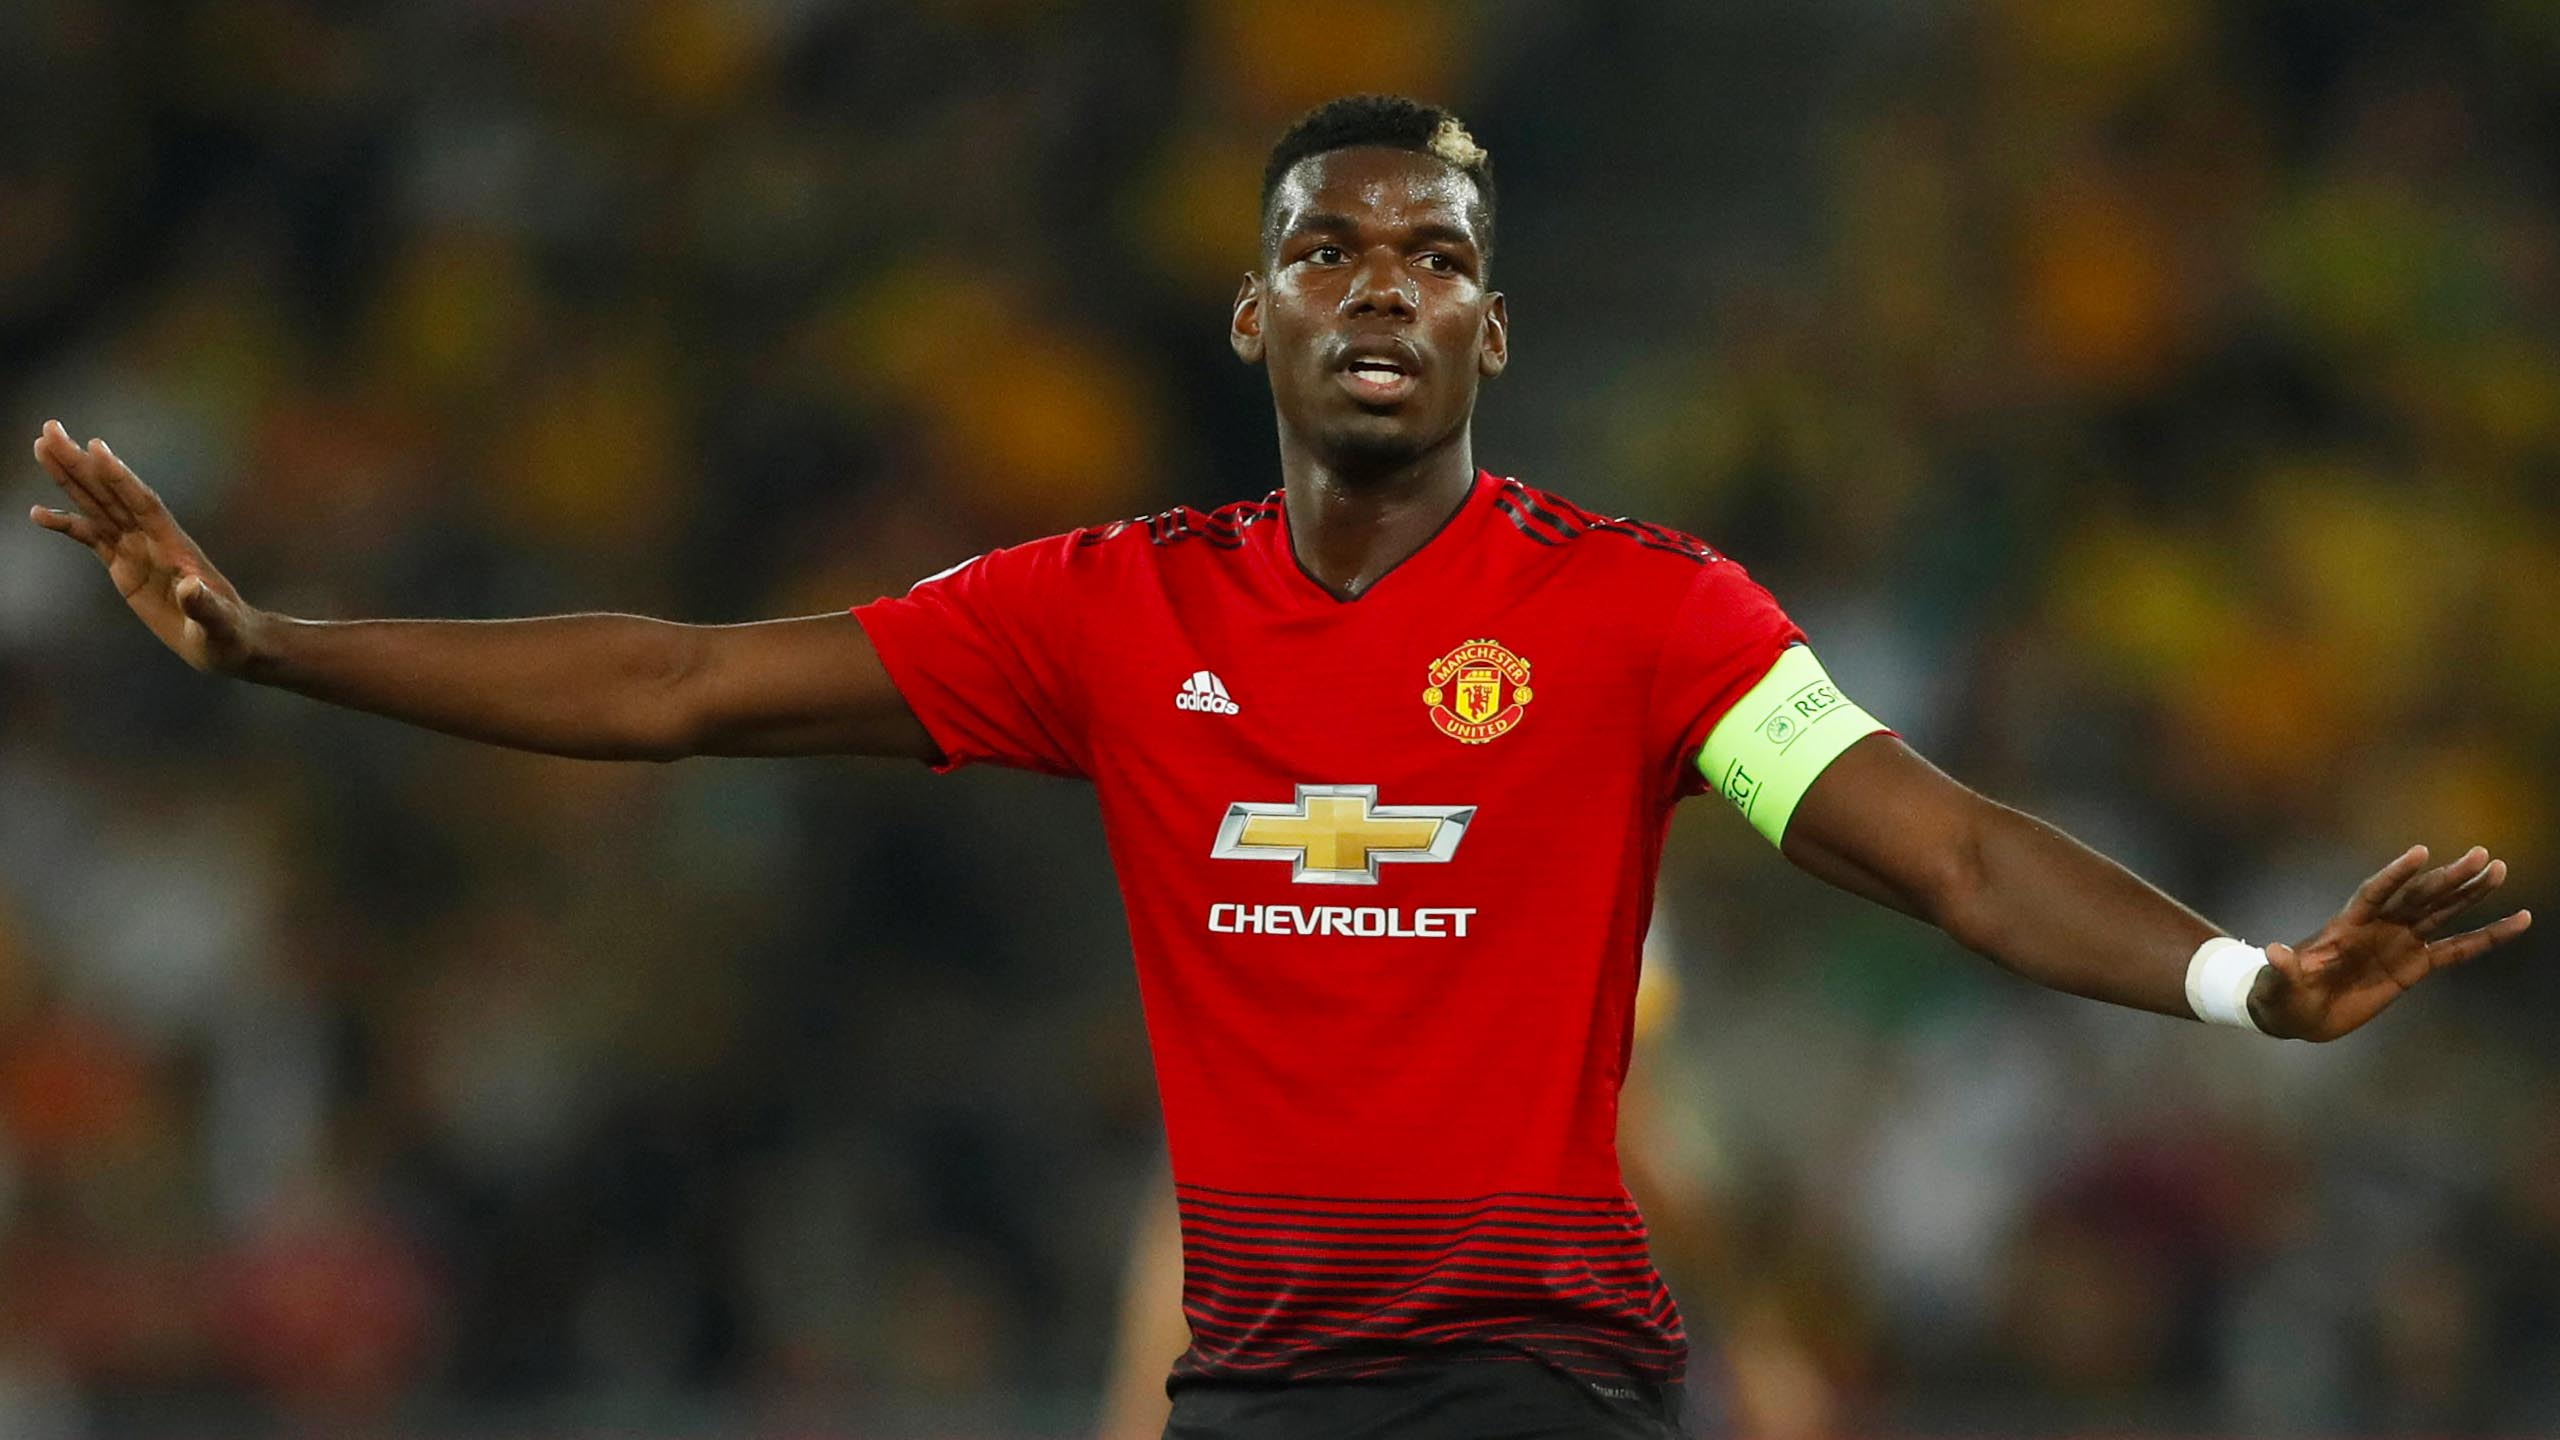 Paul Pogba arms outstretched 1280.jpg